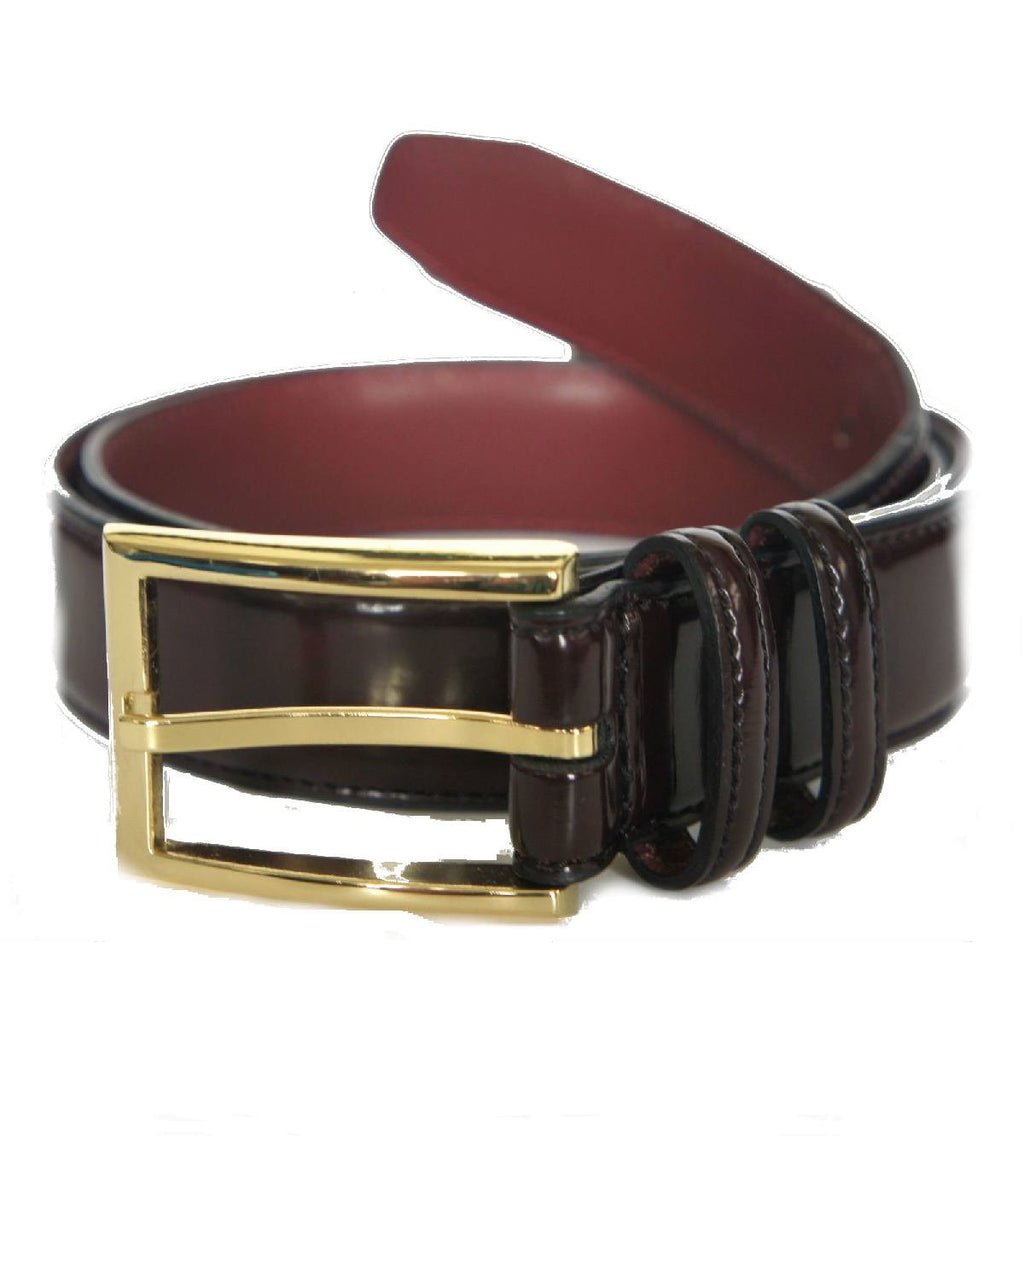 Geoffrey Beene Men's Stitched Genuine Leather Belt-GEOFFREY BEENE-Fashionbarn shop